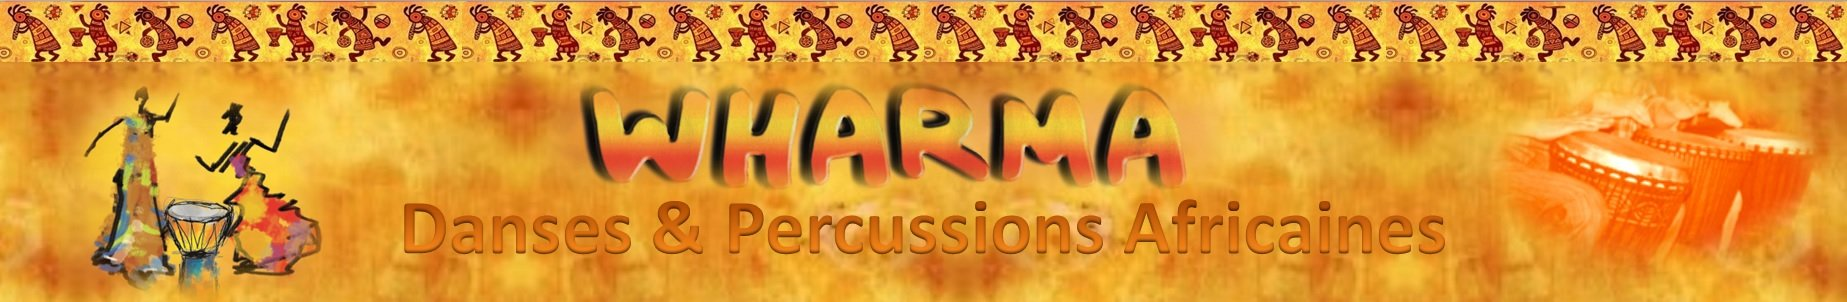 WHARMA Danses & Percussions Africaines